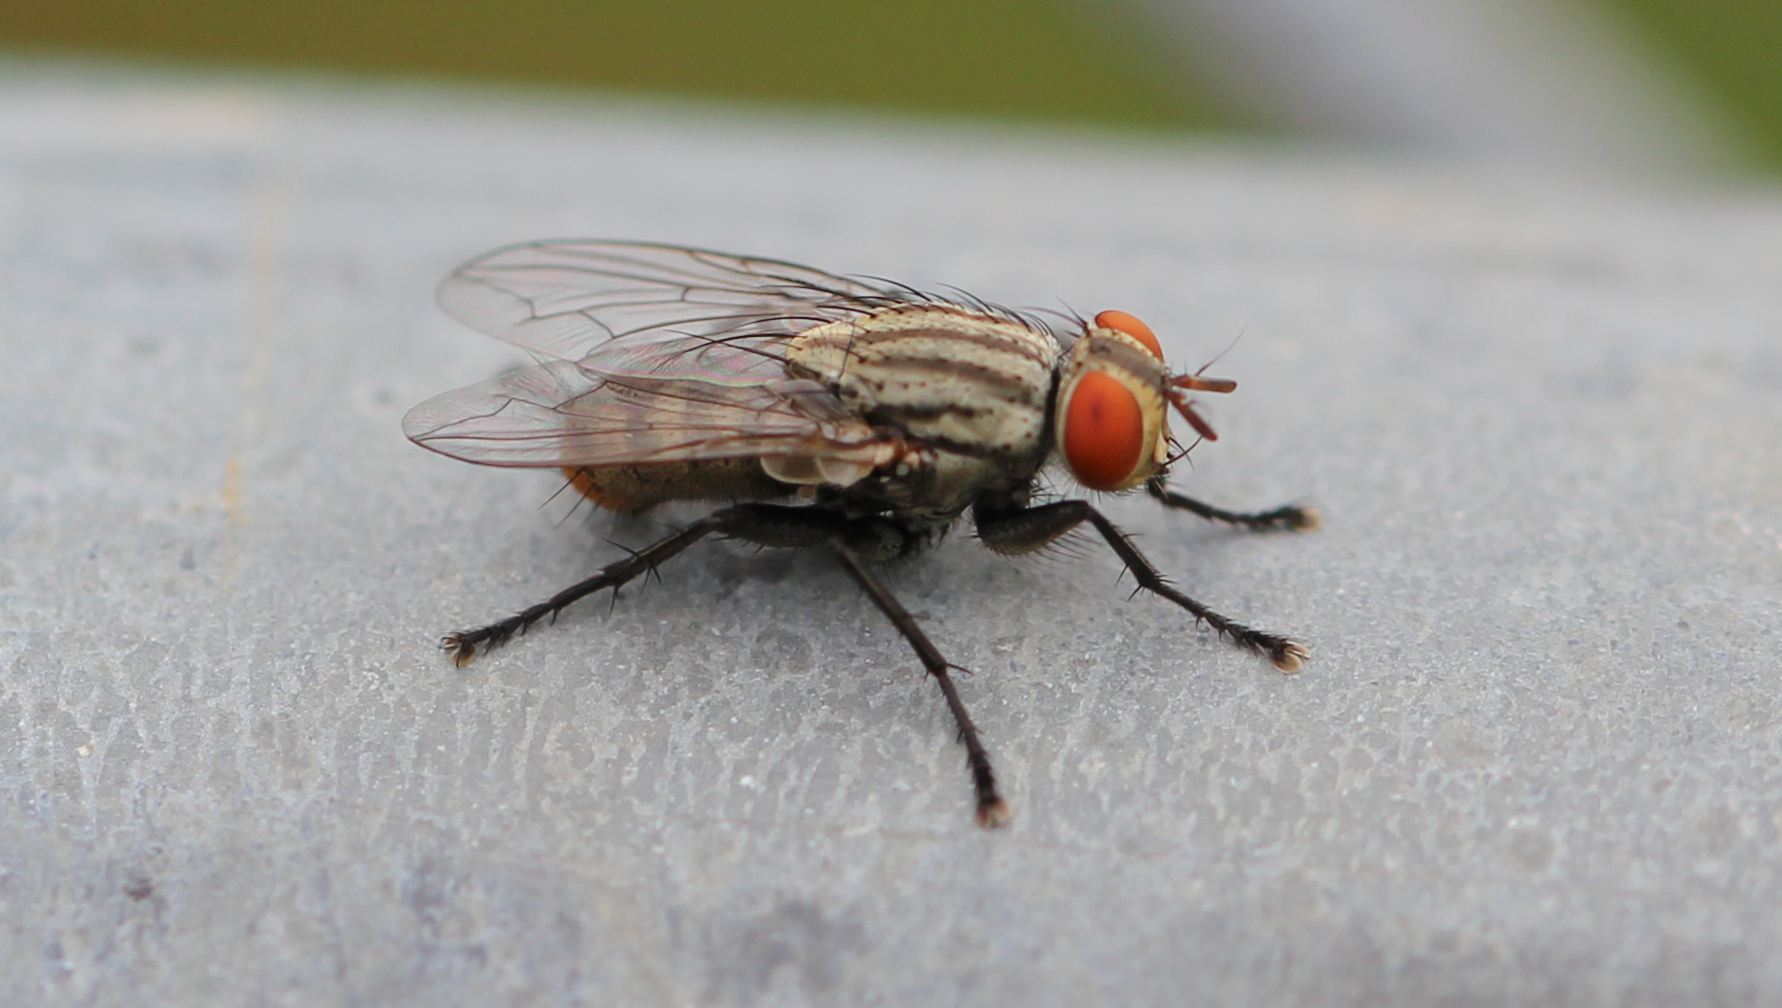 File:House Fly.jpg